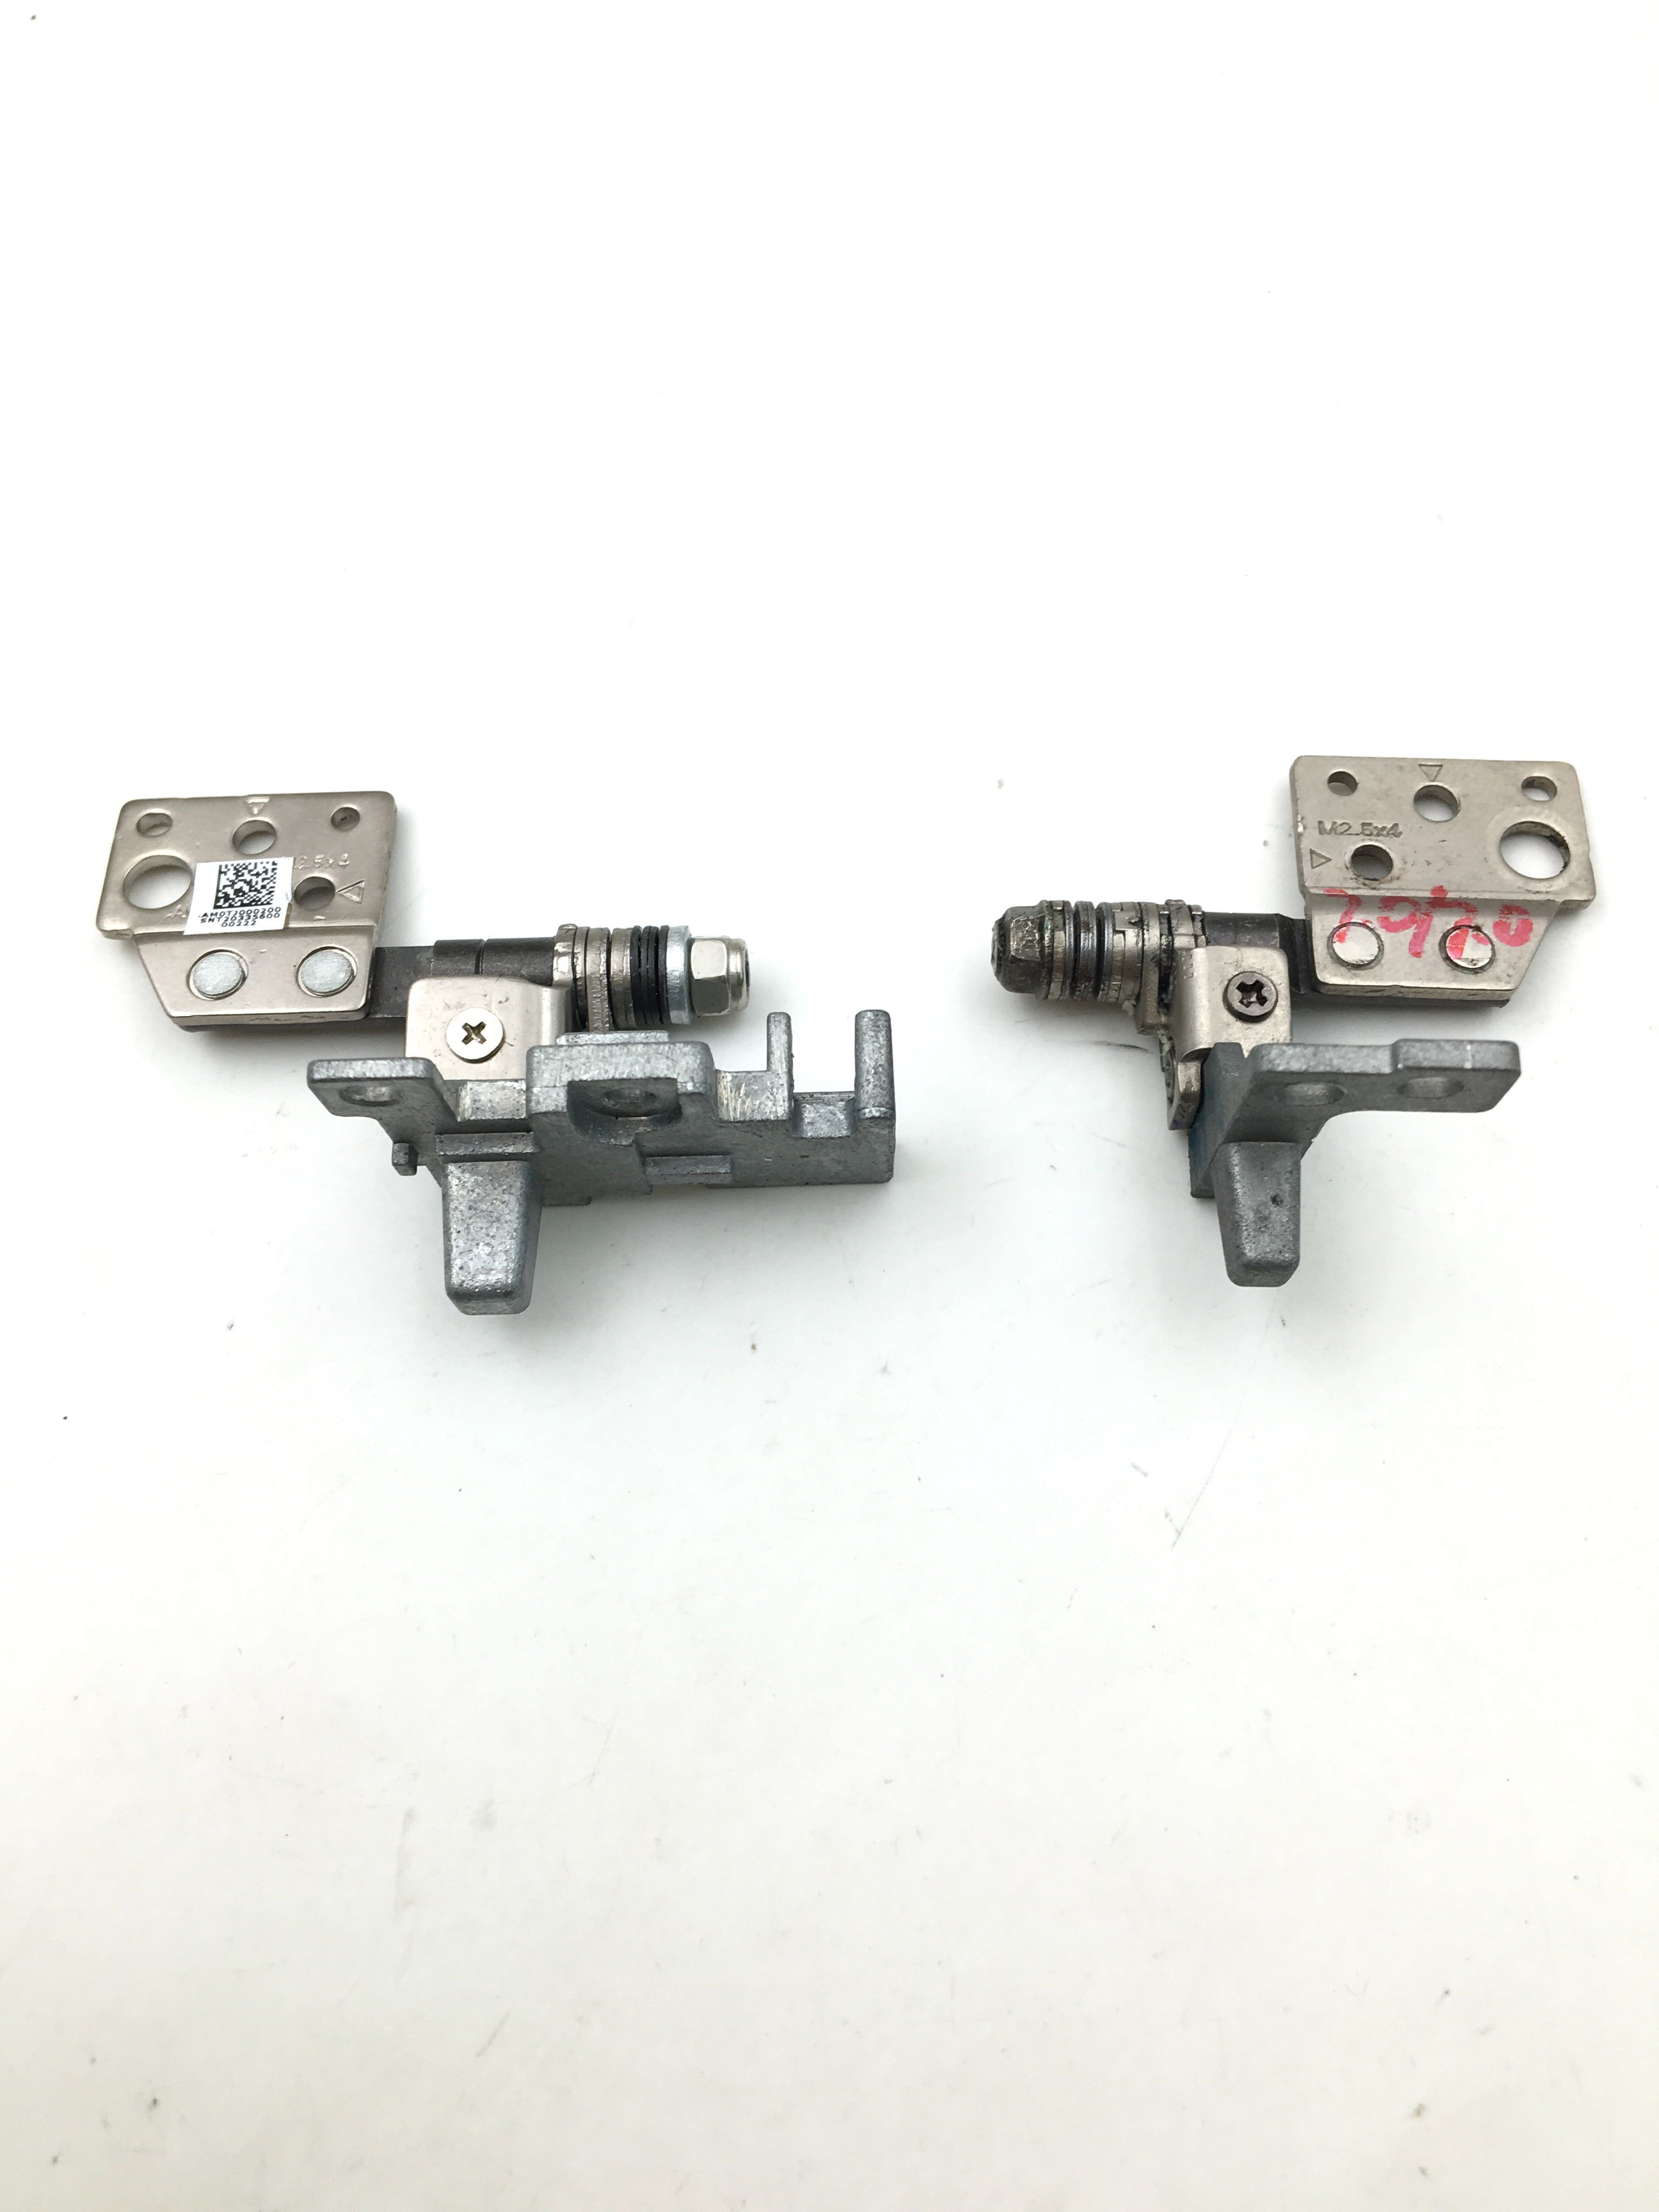 NEW hinges kit for HP zbook 15 Hinges Left and Right Set AM0TJ000200 AM0TJ000300